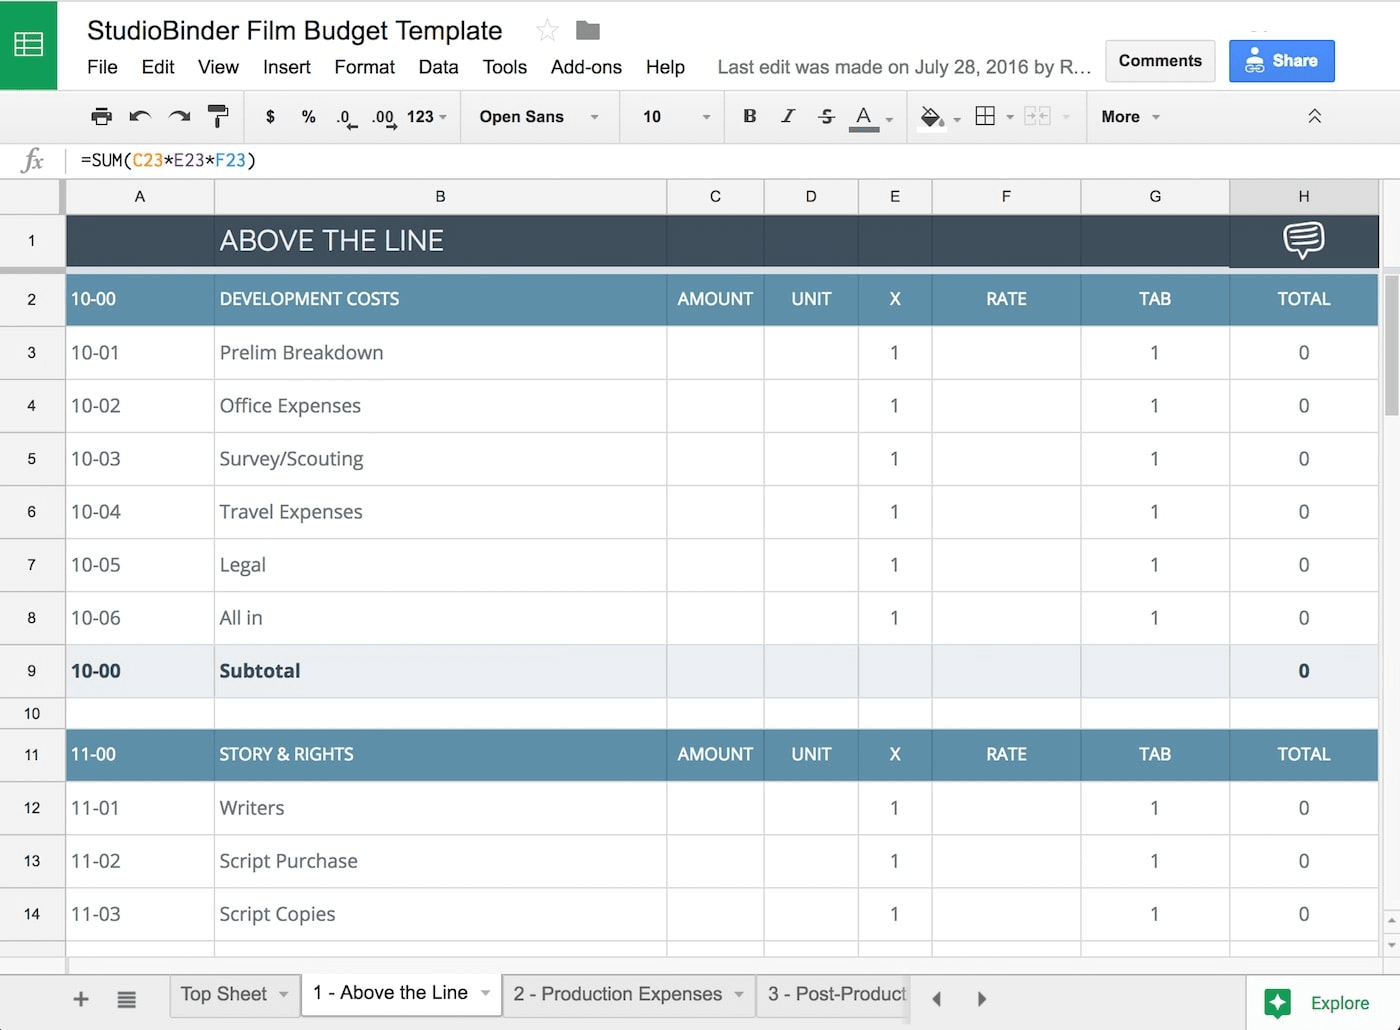 Download your FREE Film Budget Template for Film & Video Production